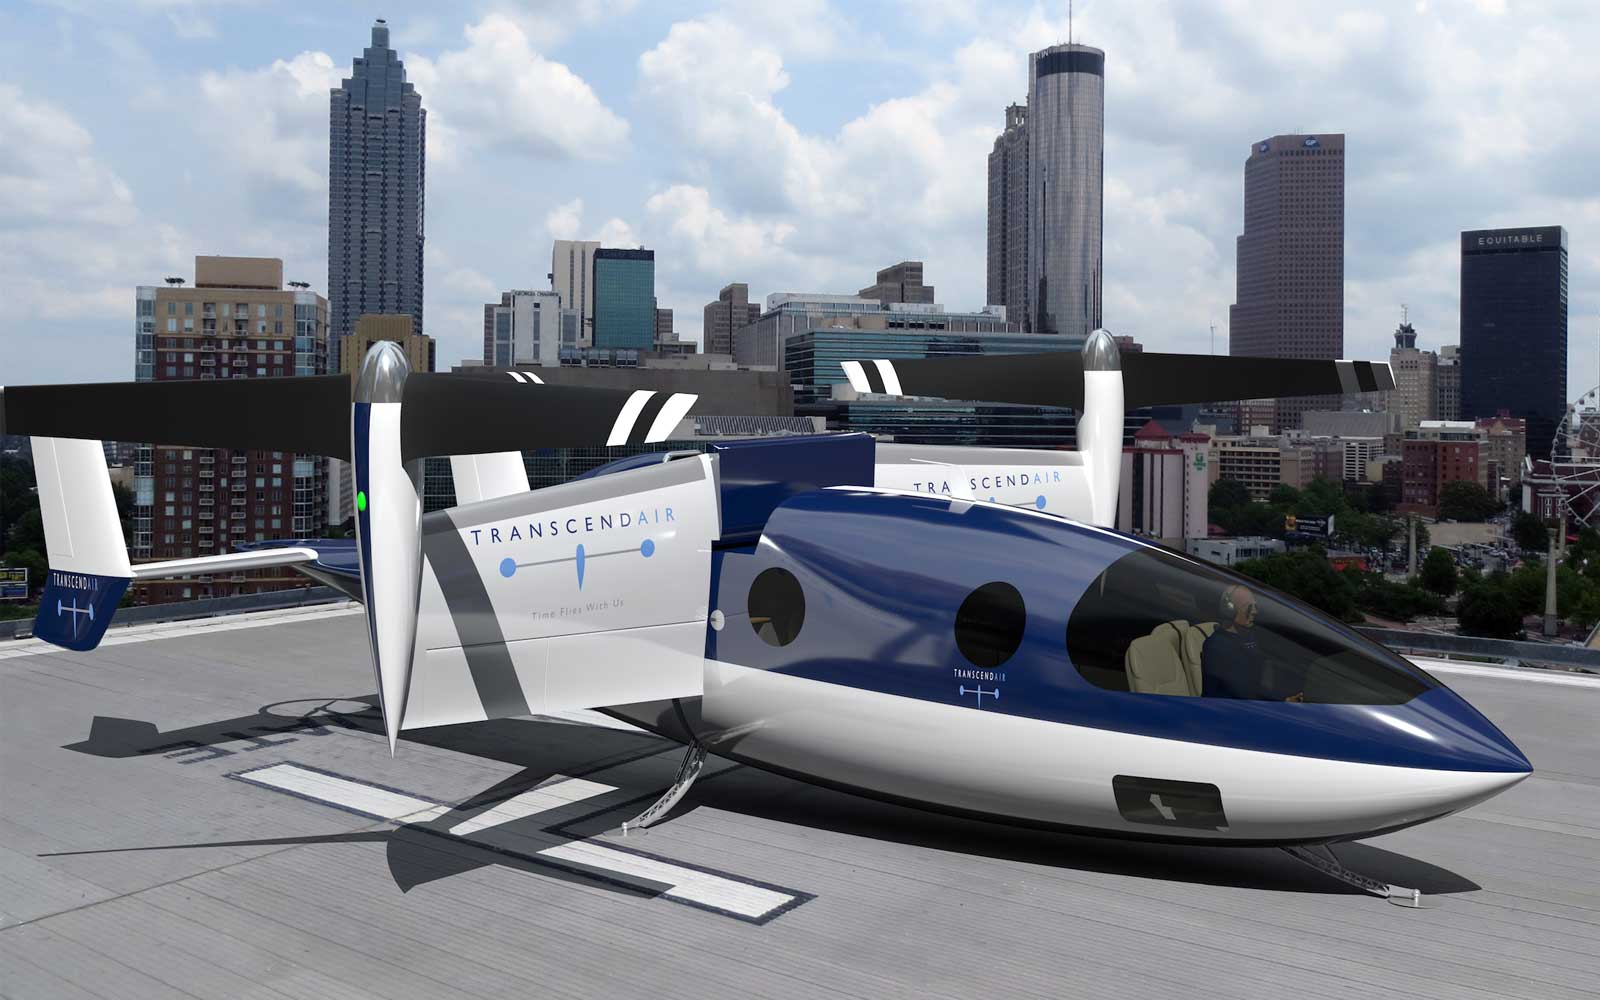 Transcend Air's aircraft will take passengers between cities like Boston and New York in under 40 minutes.